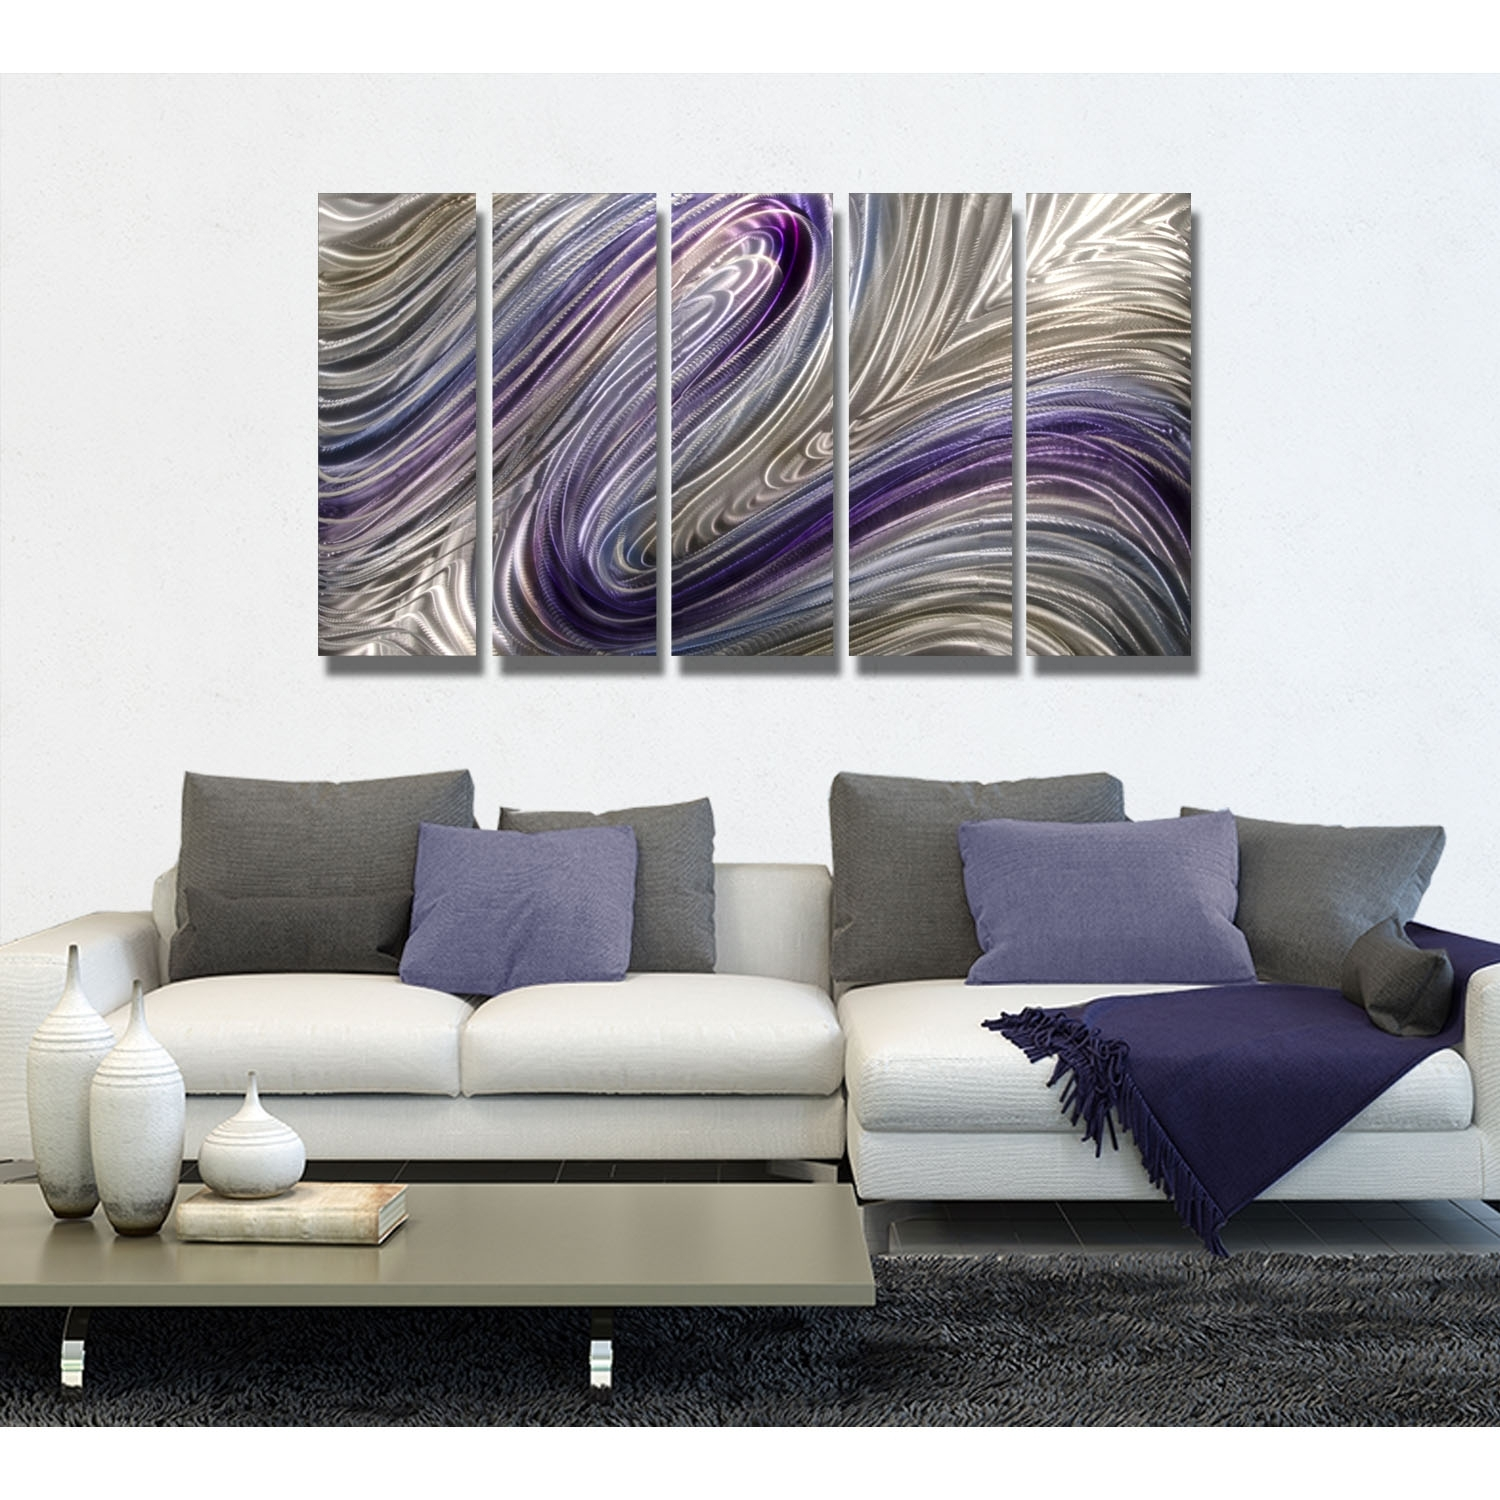 Reverie – Purple, Silver And Gold Metal Wall Art – 5 Panel Wall Pertaining To Newest Purple And Grey Wall Art (View 12 of 20)